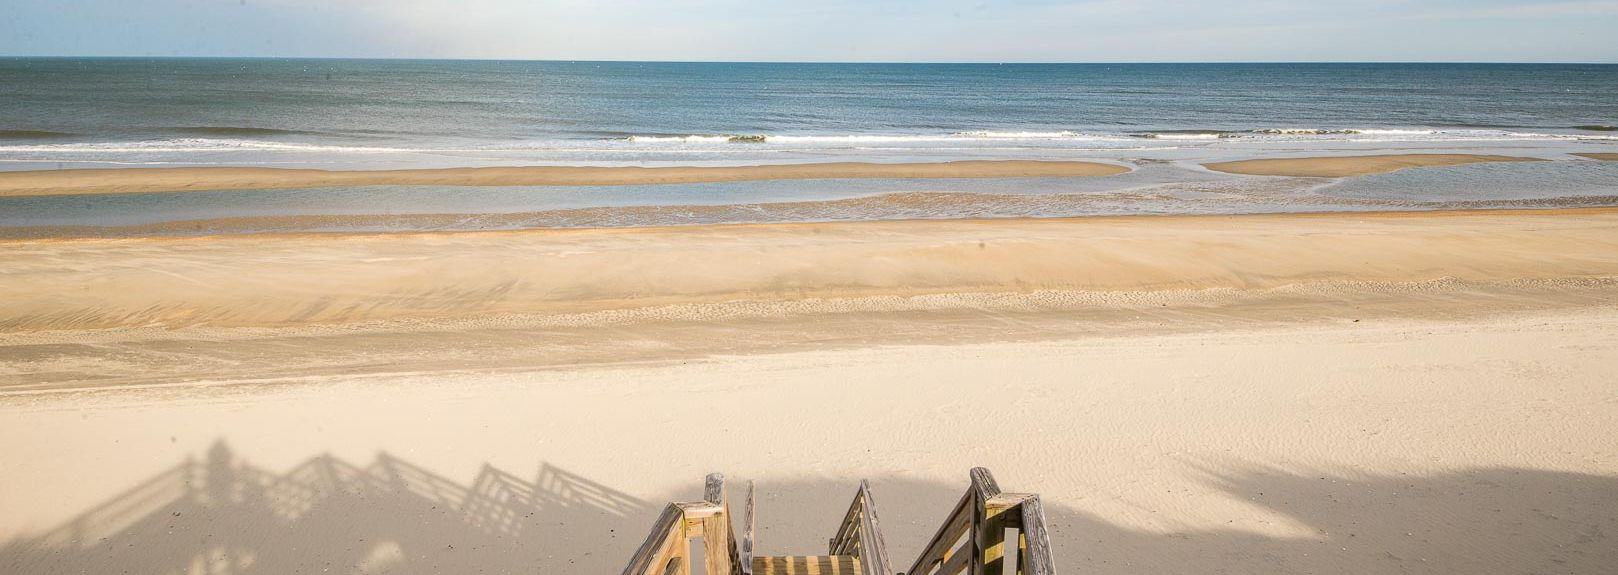 Vrbo 174 Ocean Sands Section Q Corolla Vacation Rentals